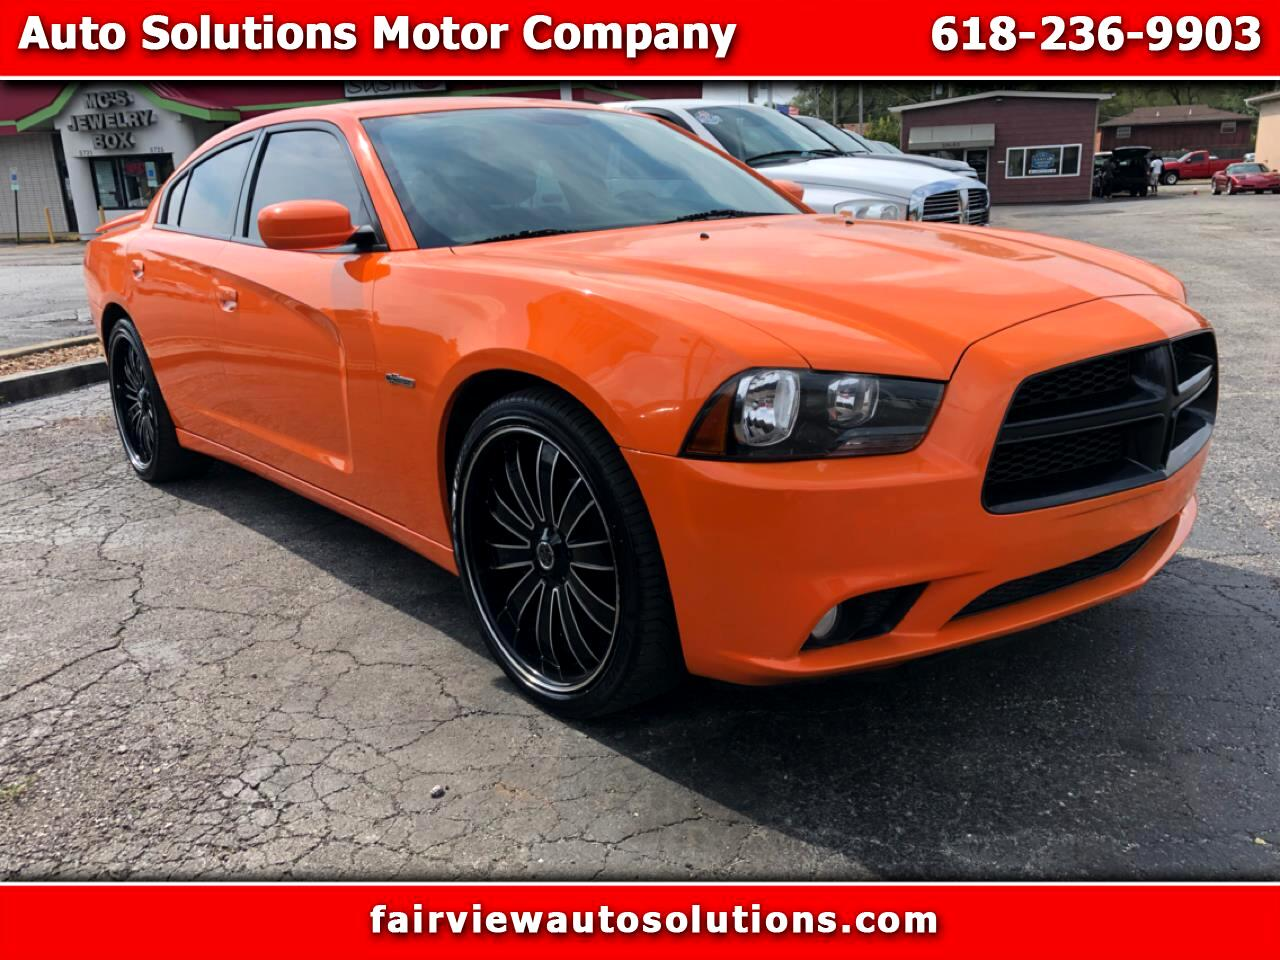 Dodge Charger 4dr Sdn SXT 100th Anniversary RWD *Ltd Avail* 2014